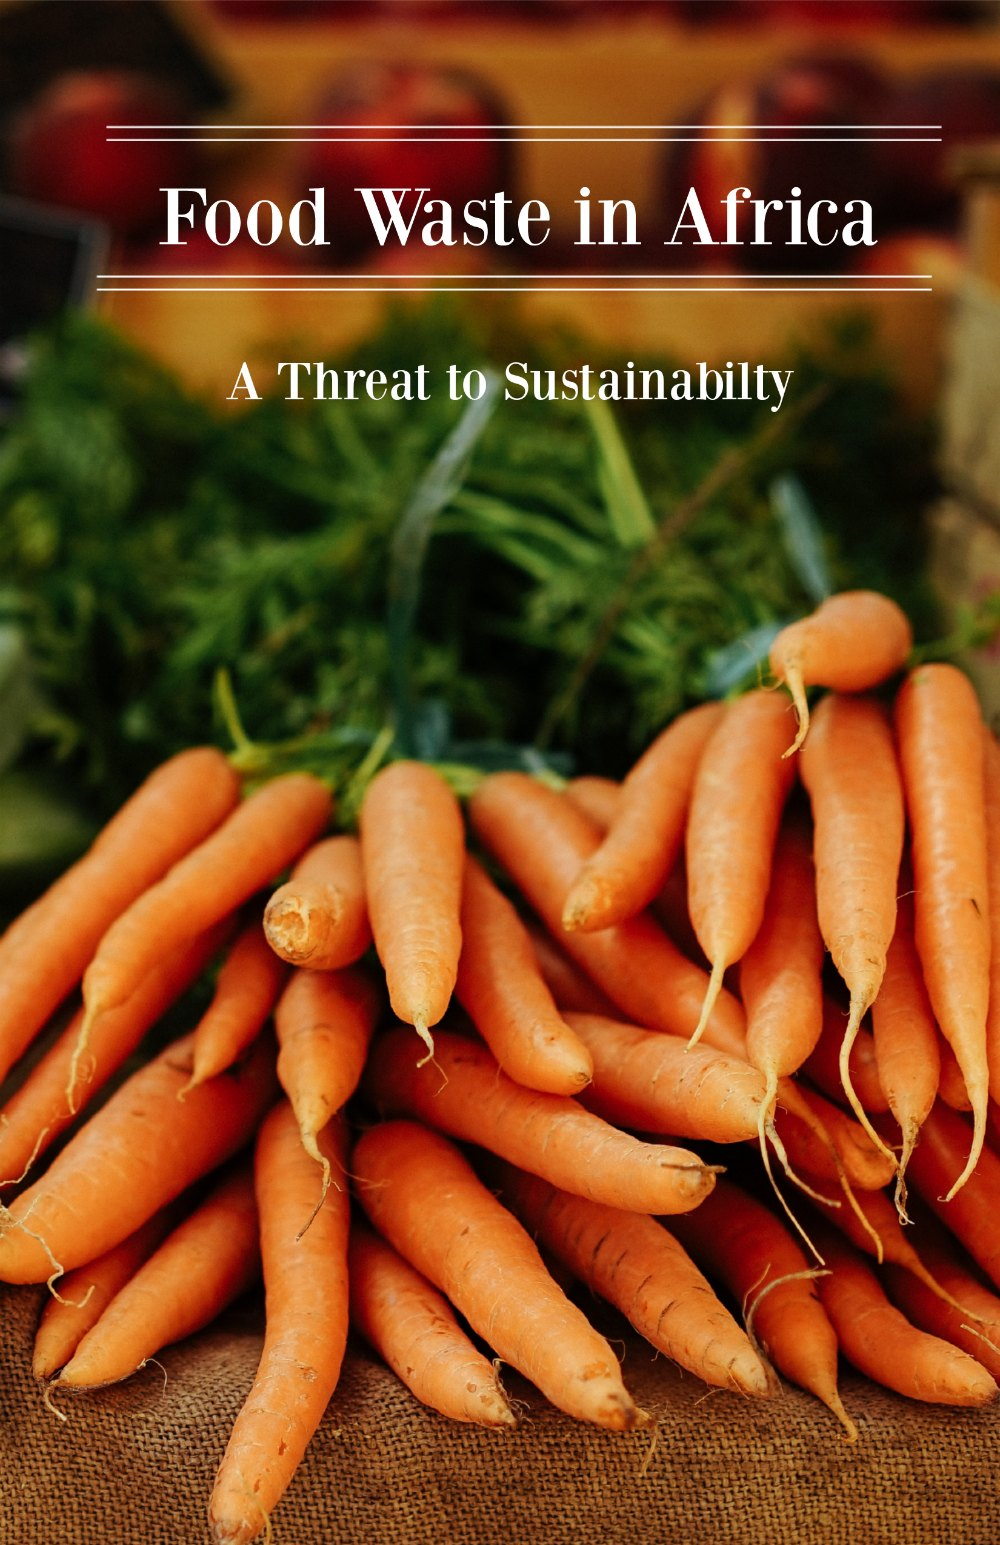 Reducing food waste in Africa is critical to improving food availability, achieving food security, and reducing stress on natural resources.